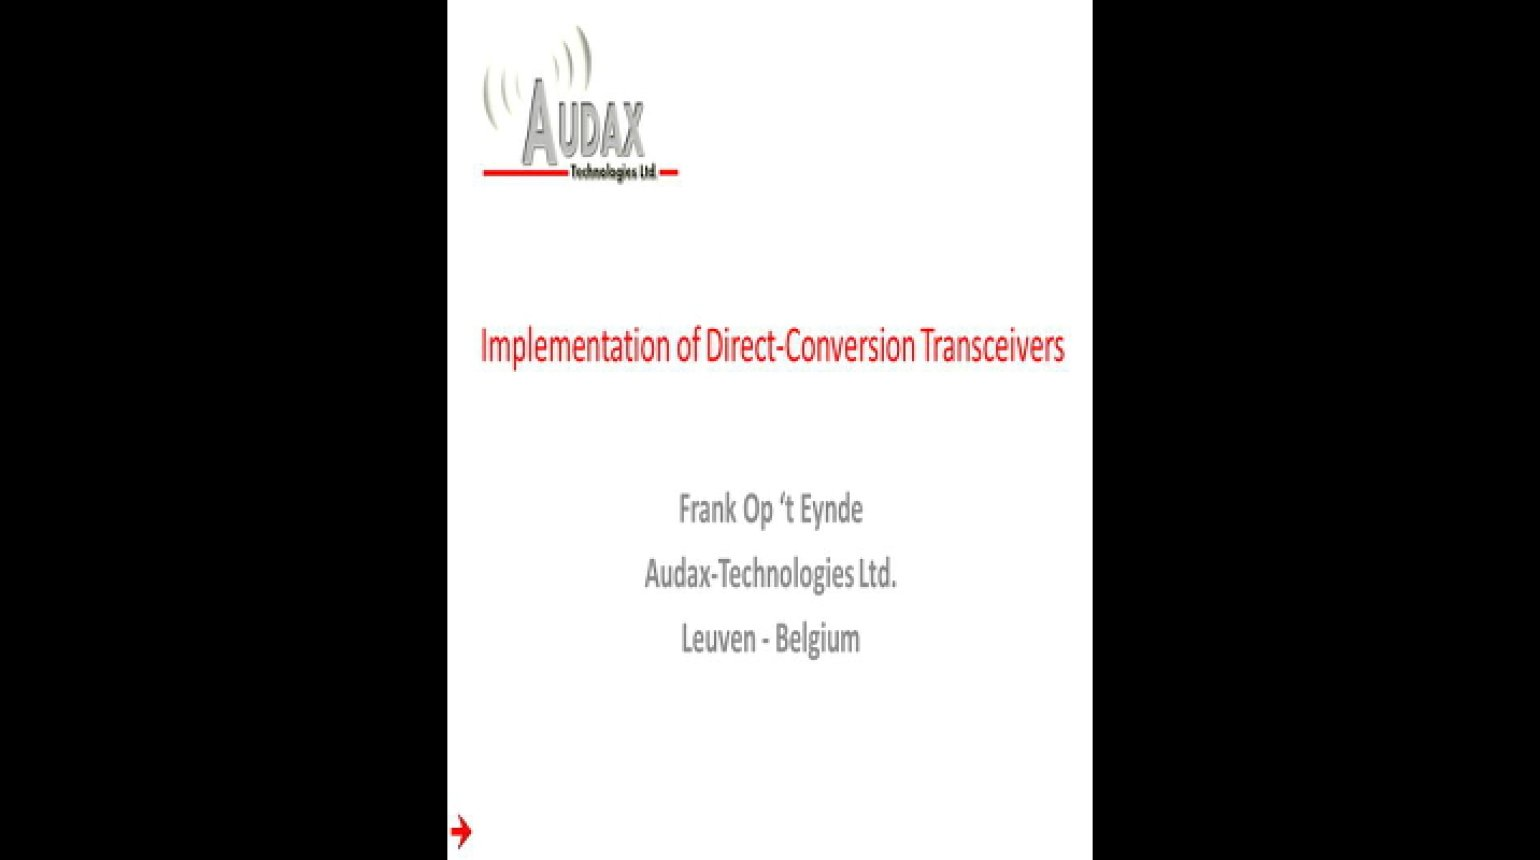 Implementation of Direct Conversion Transceivers Video